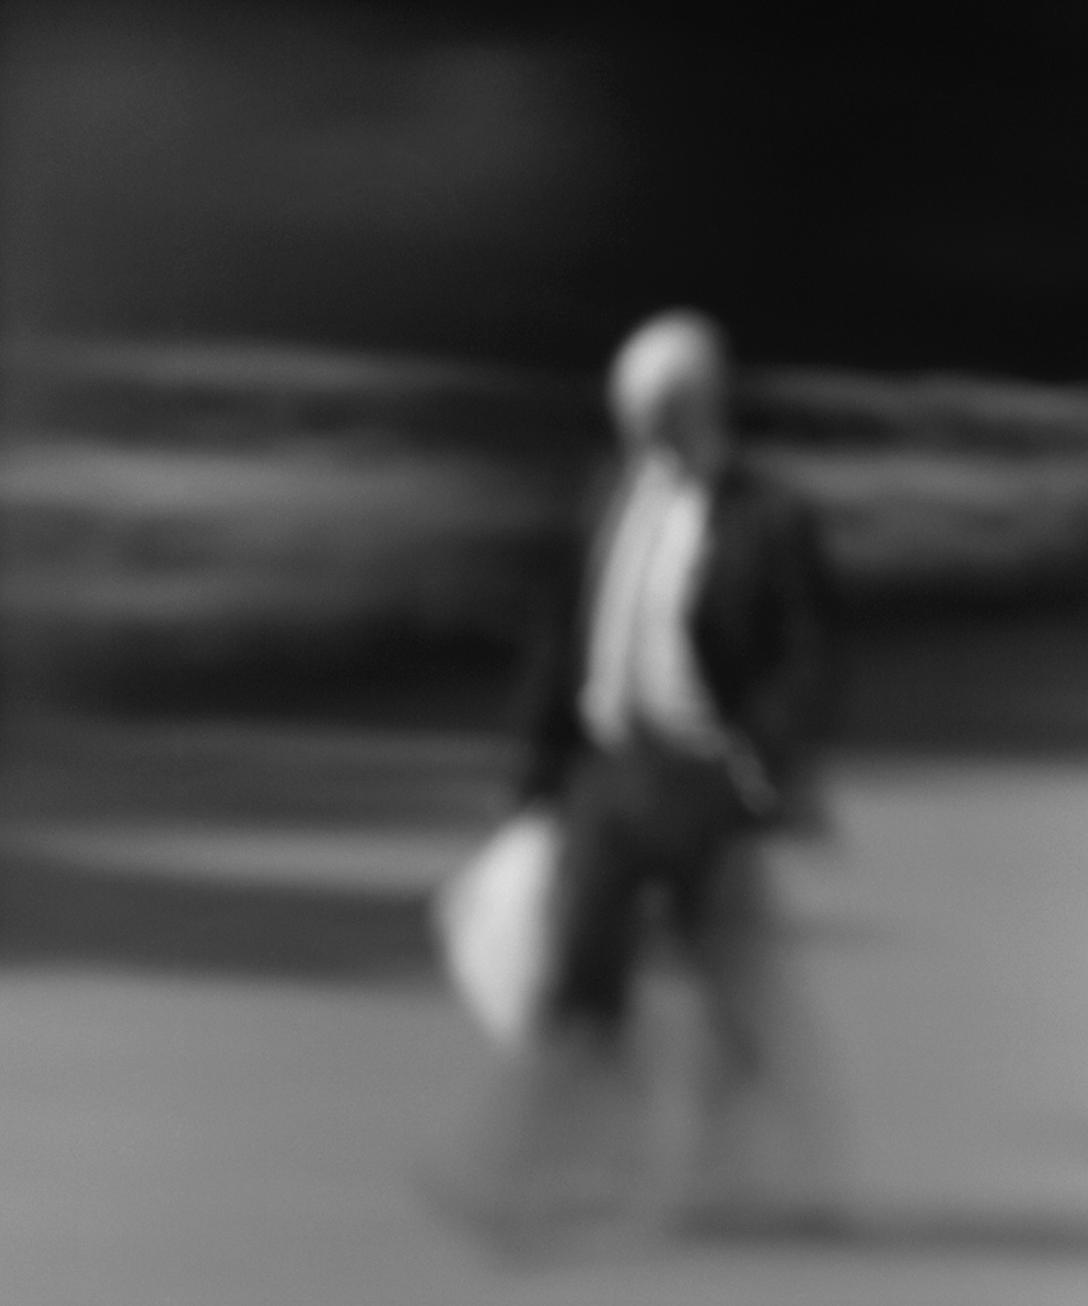 Photograph made with the pinhole camera from the series  Cronopios